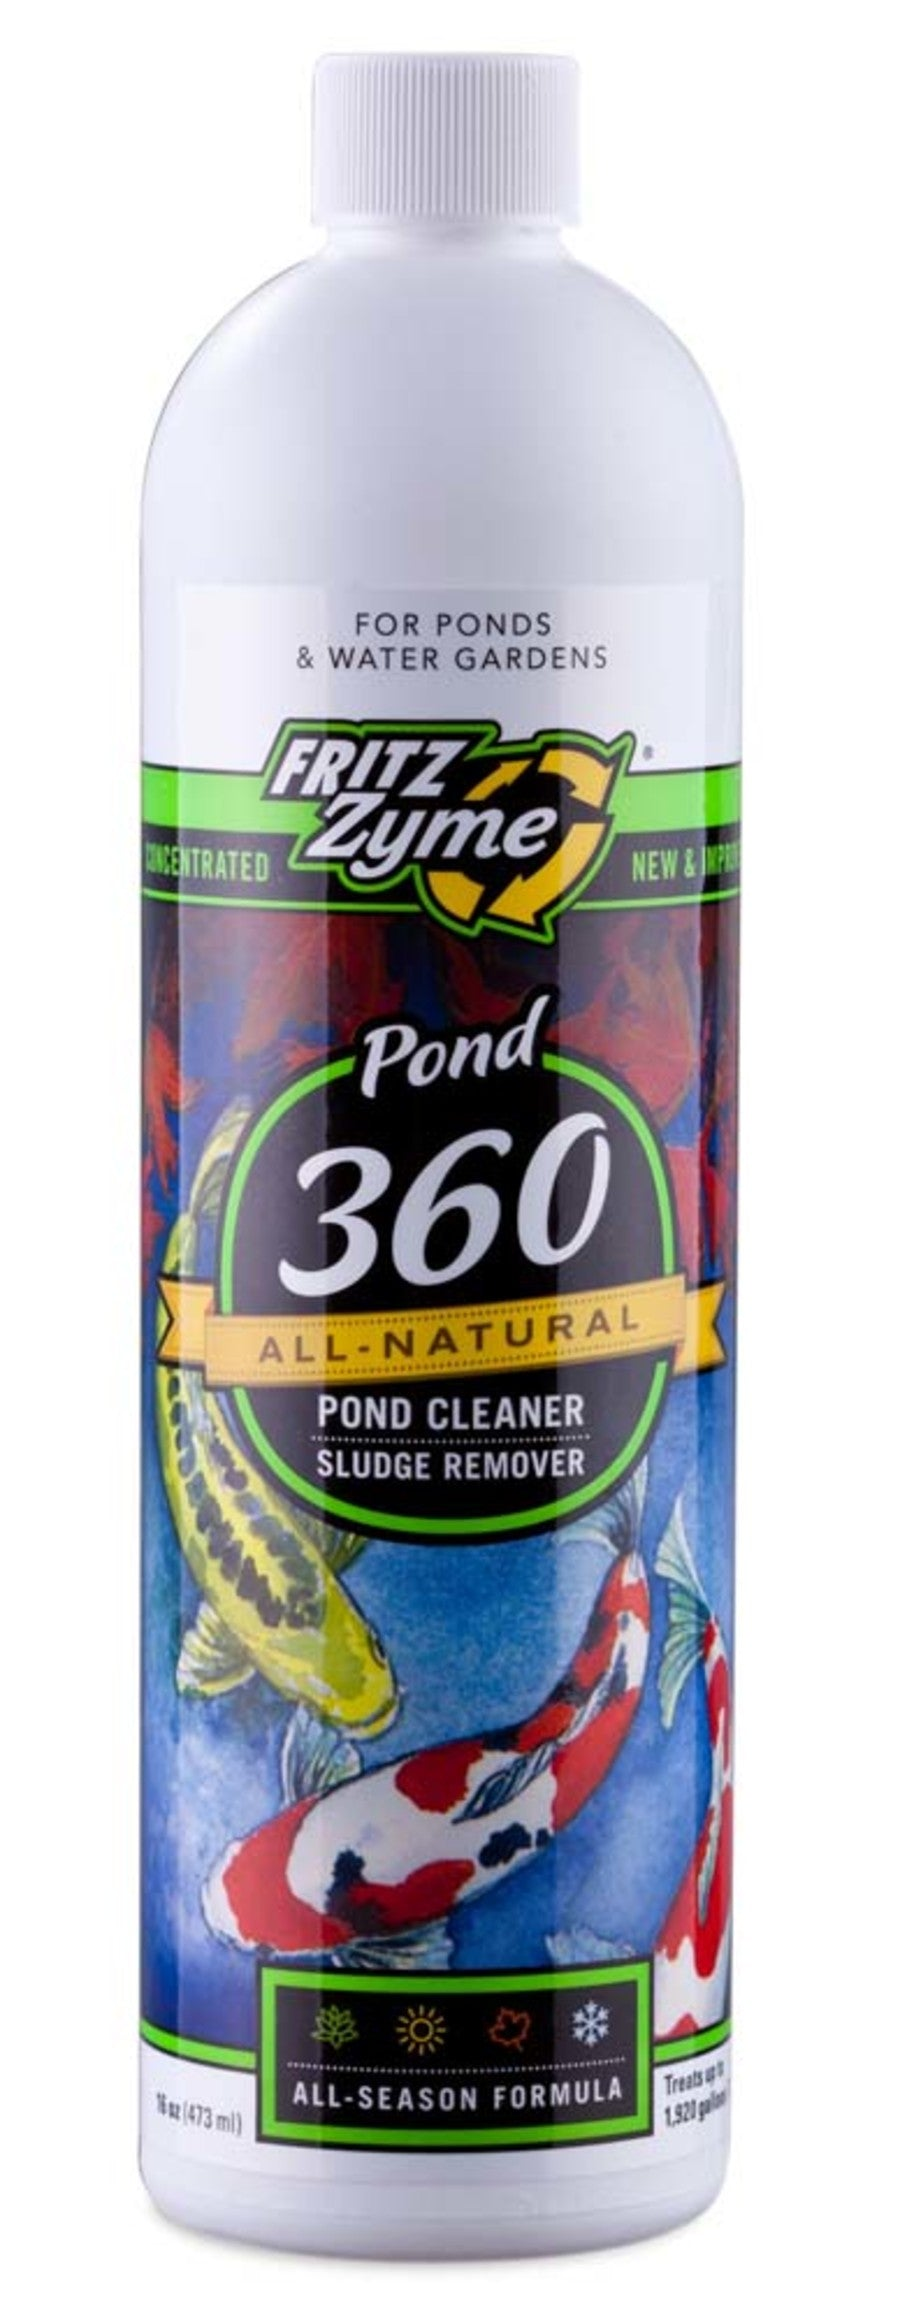 Fritz Pond FritzZyme 360 Liquid Biological Conditioner